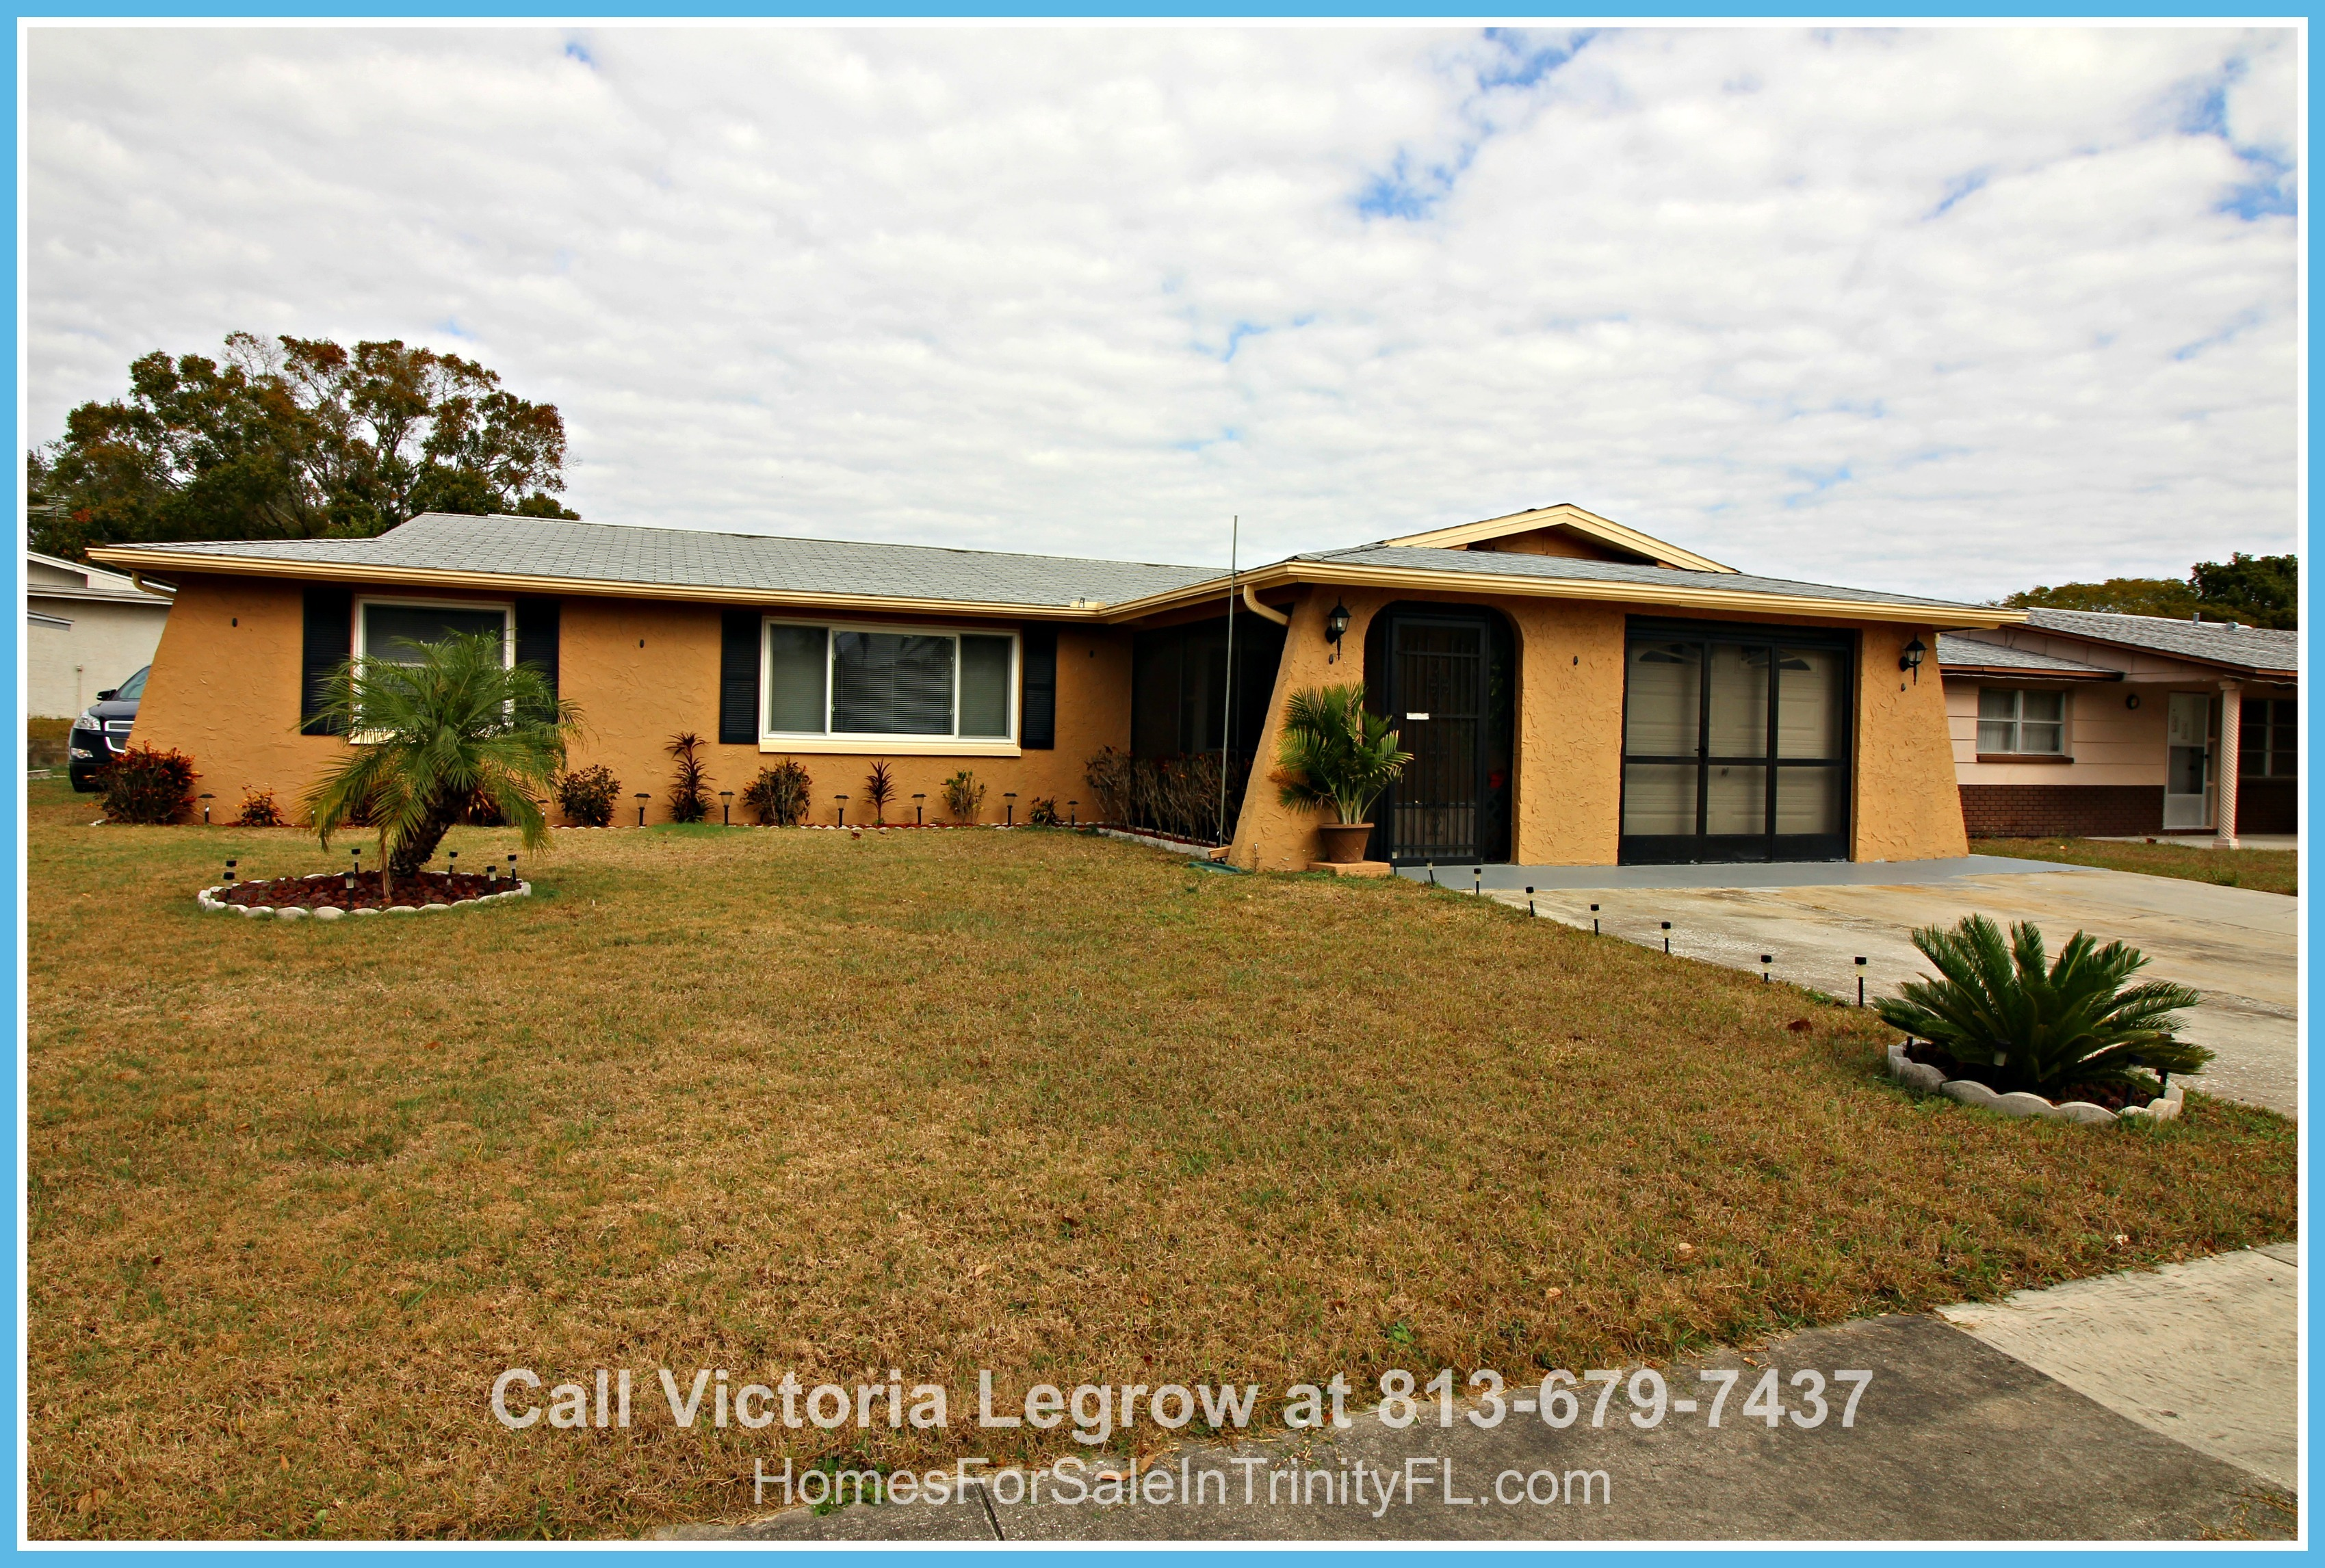 Holiday FL Homes for Sale - This single family home in the popular subdivision of La Villa Gardens FL is a treasure waiting for you!